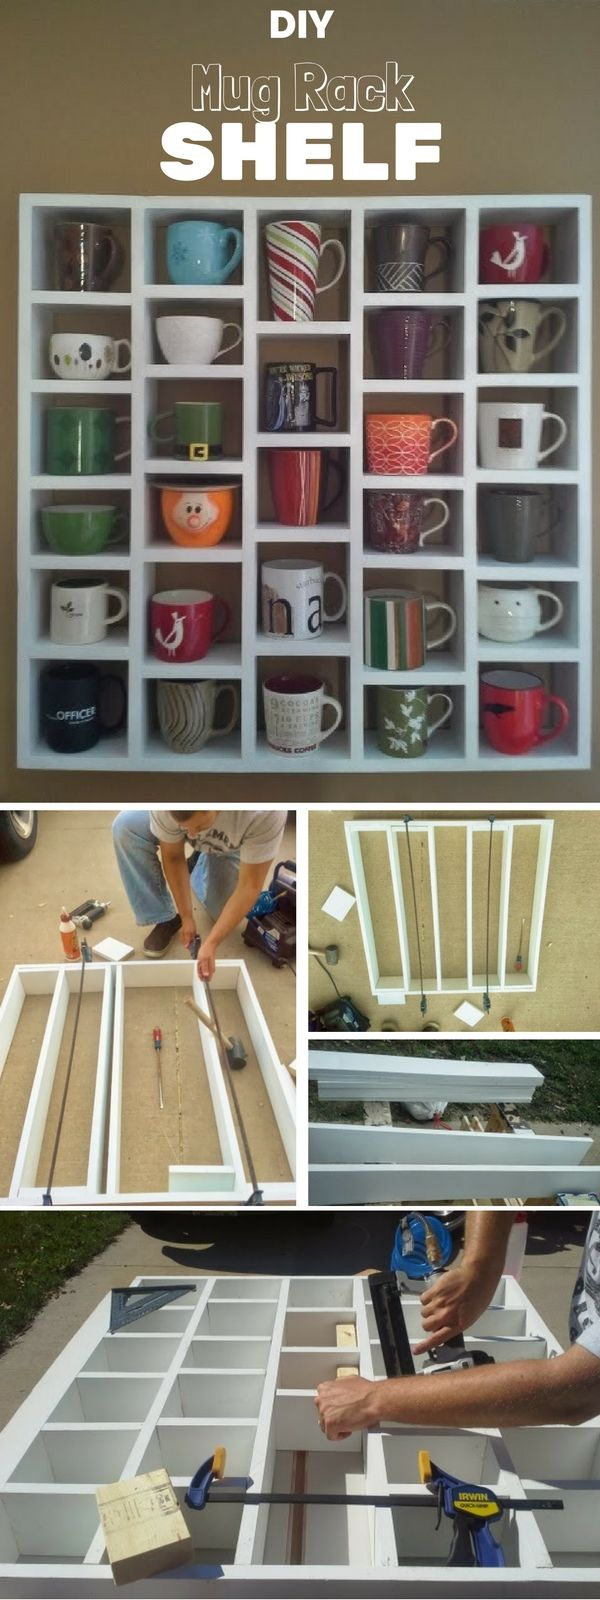 Check out the tutorial: #DIY Mug Rack Shelf @istandarddesign